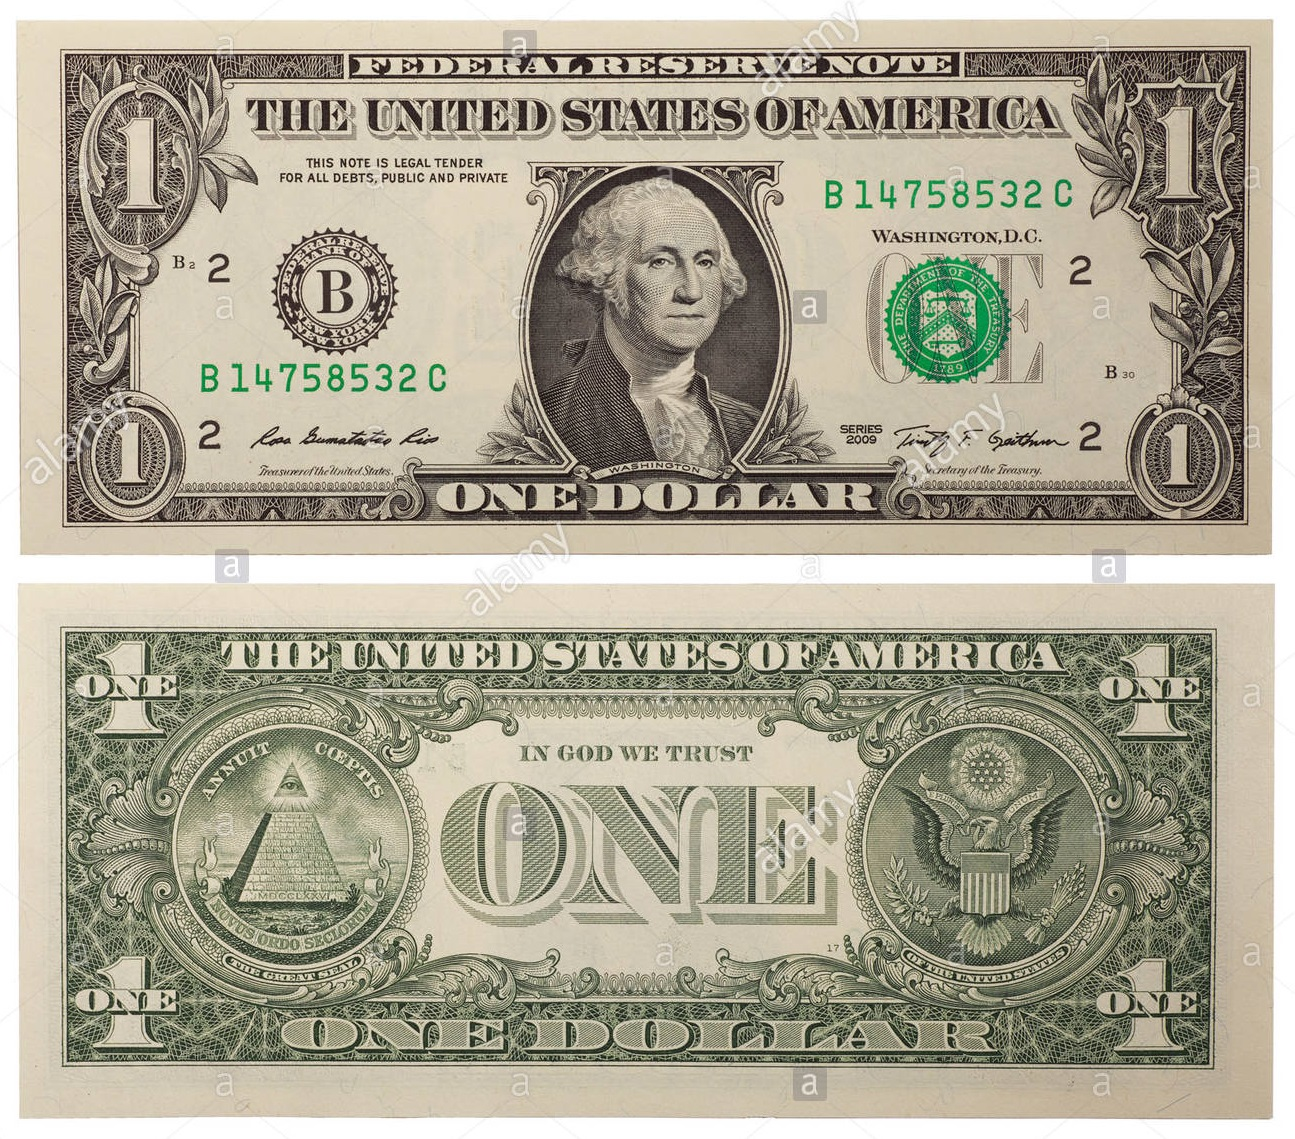 one-dollar-bill-back-and-front-cp0nmn_1.jpg